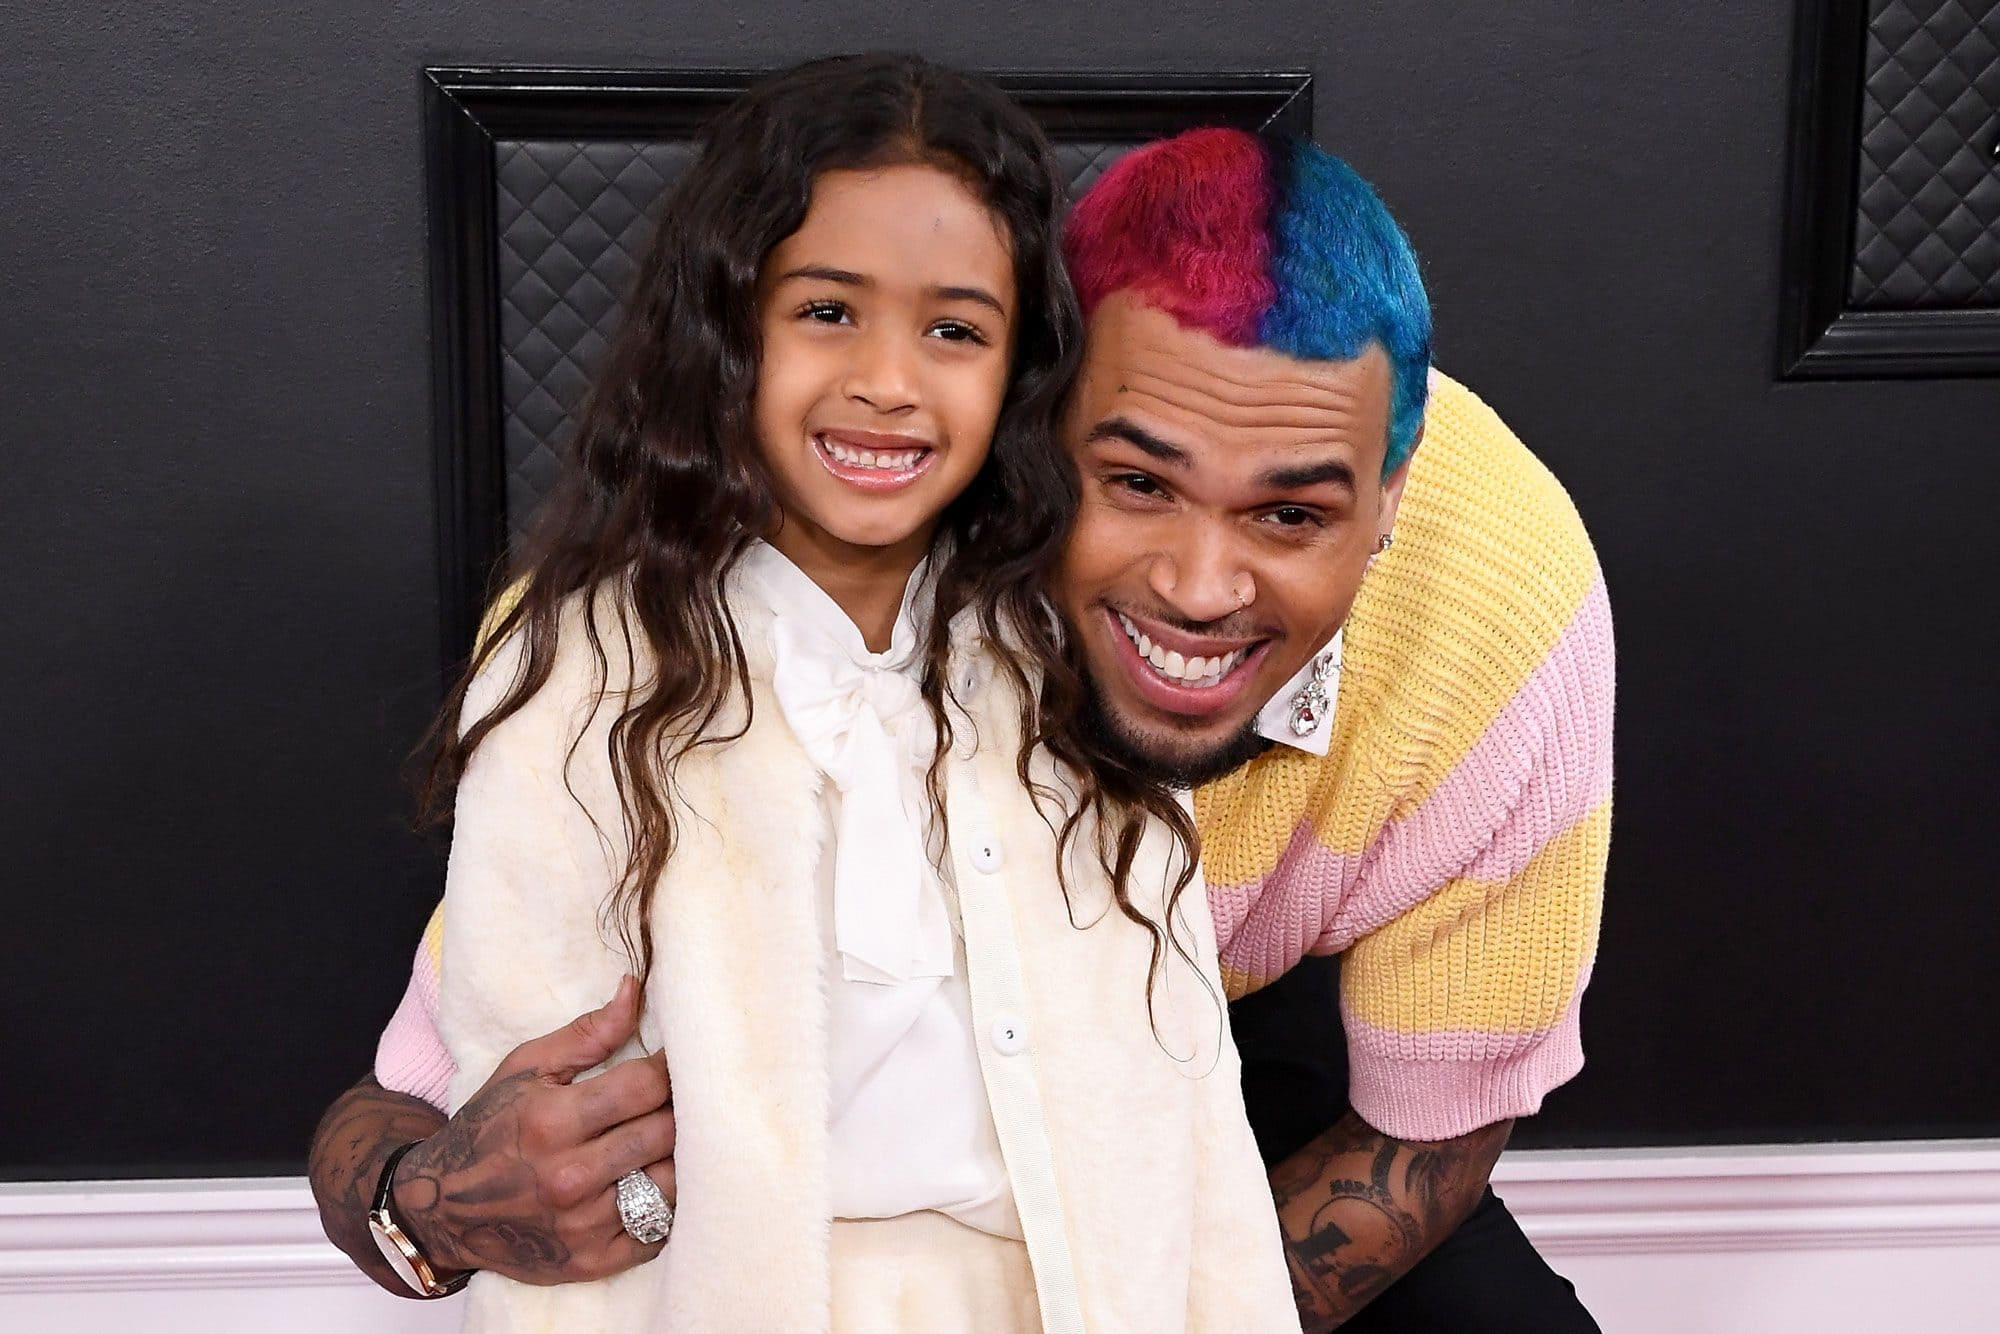 Chris Brown with his daughter Royalty Brown